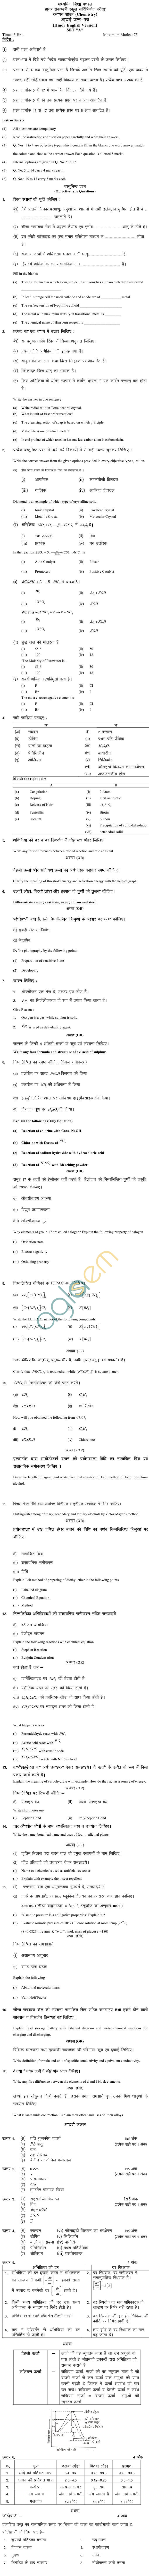 MP Board Class XII Chemistry Model Questions & Answers - Set 1